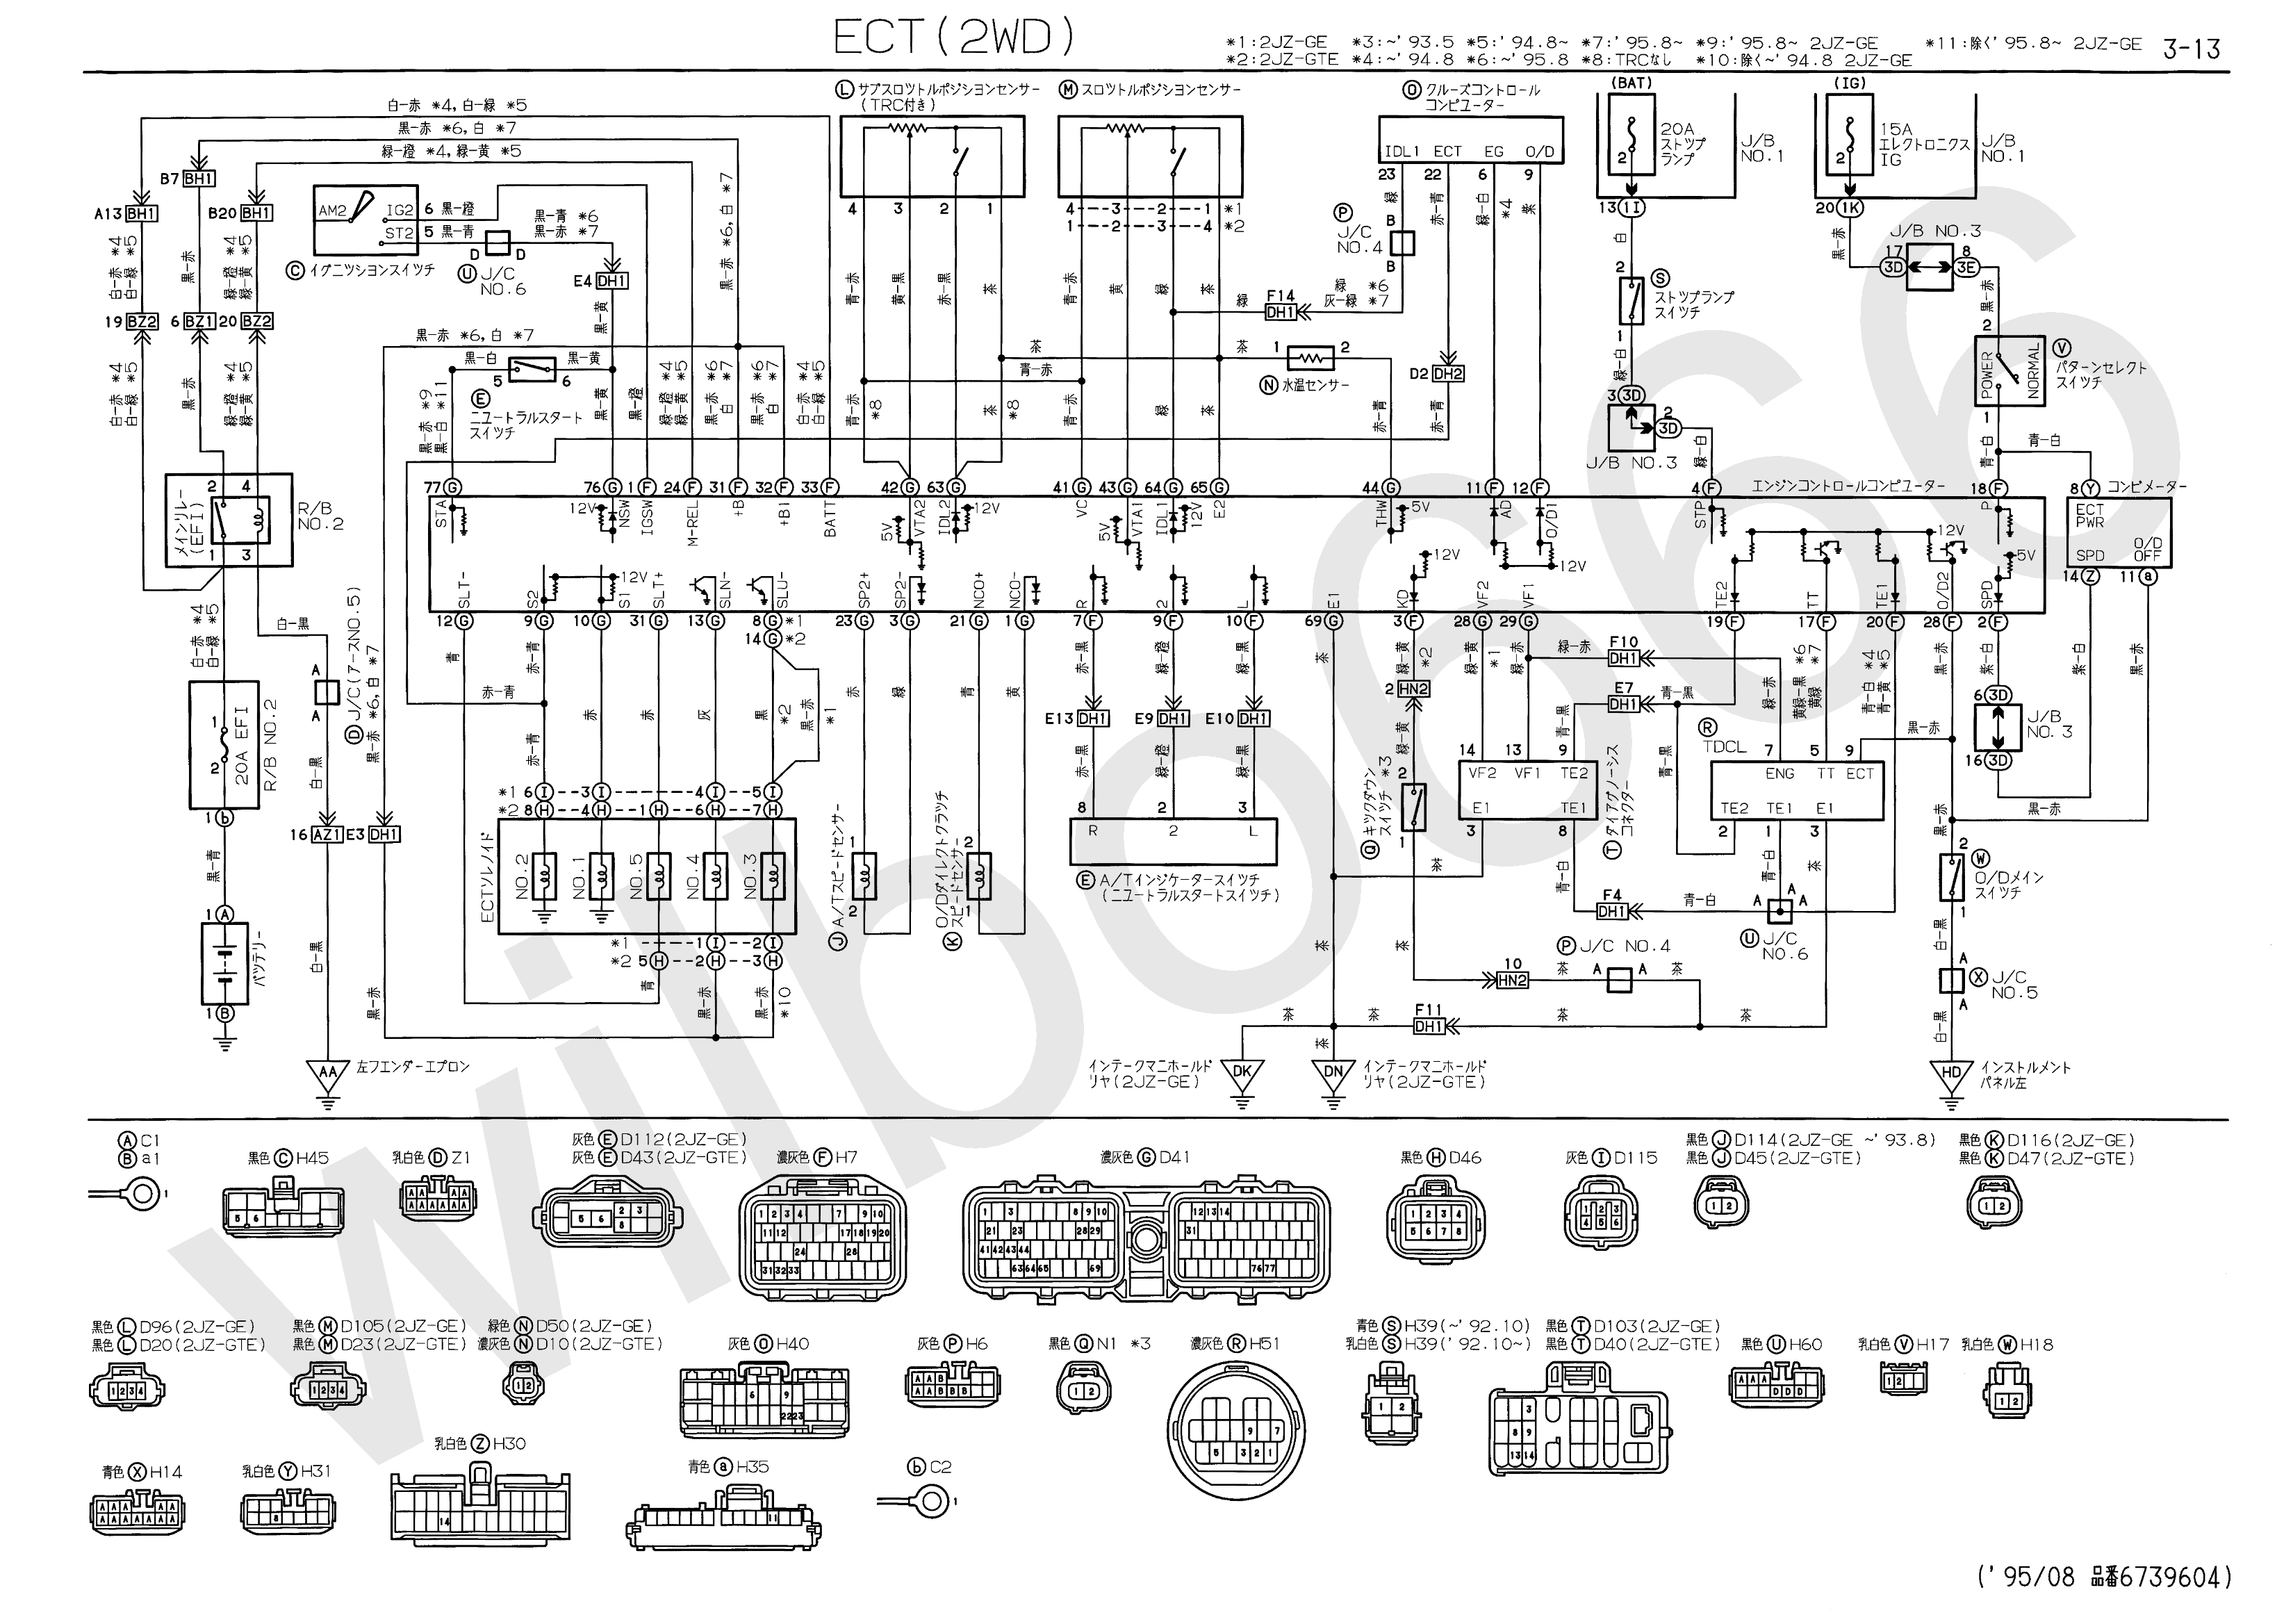 wilbo666 2jz gte jzs147 aristo engine wiring rh wilbo666 pbworks com 99 Chevy 4 3 Sensor Diagram Chevy 4.3 Vortec Engine Diagram